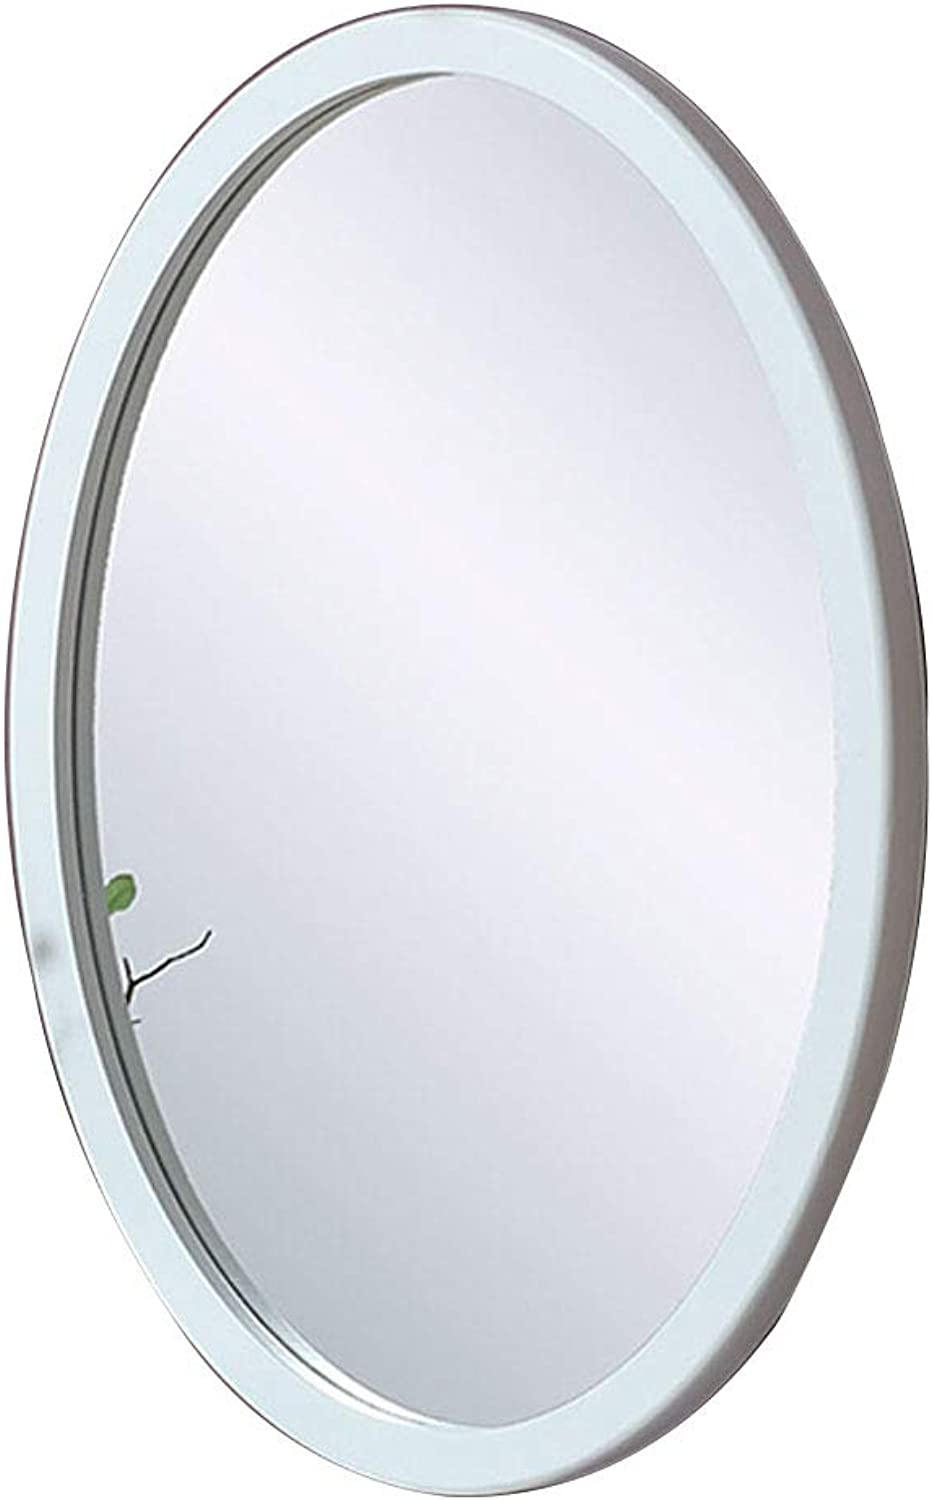 Wall-Mounted Bathroom Mirror Oval Horizontal Or greenical Premium Quality Frame Complete Kit for Home Bedroom   Hallway White